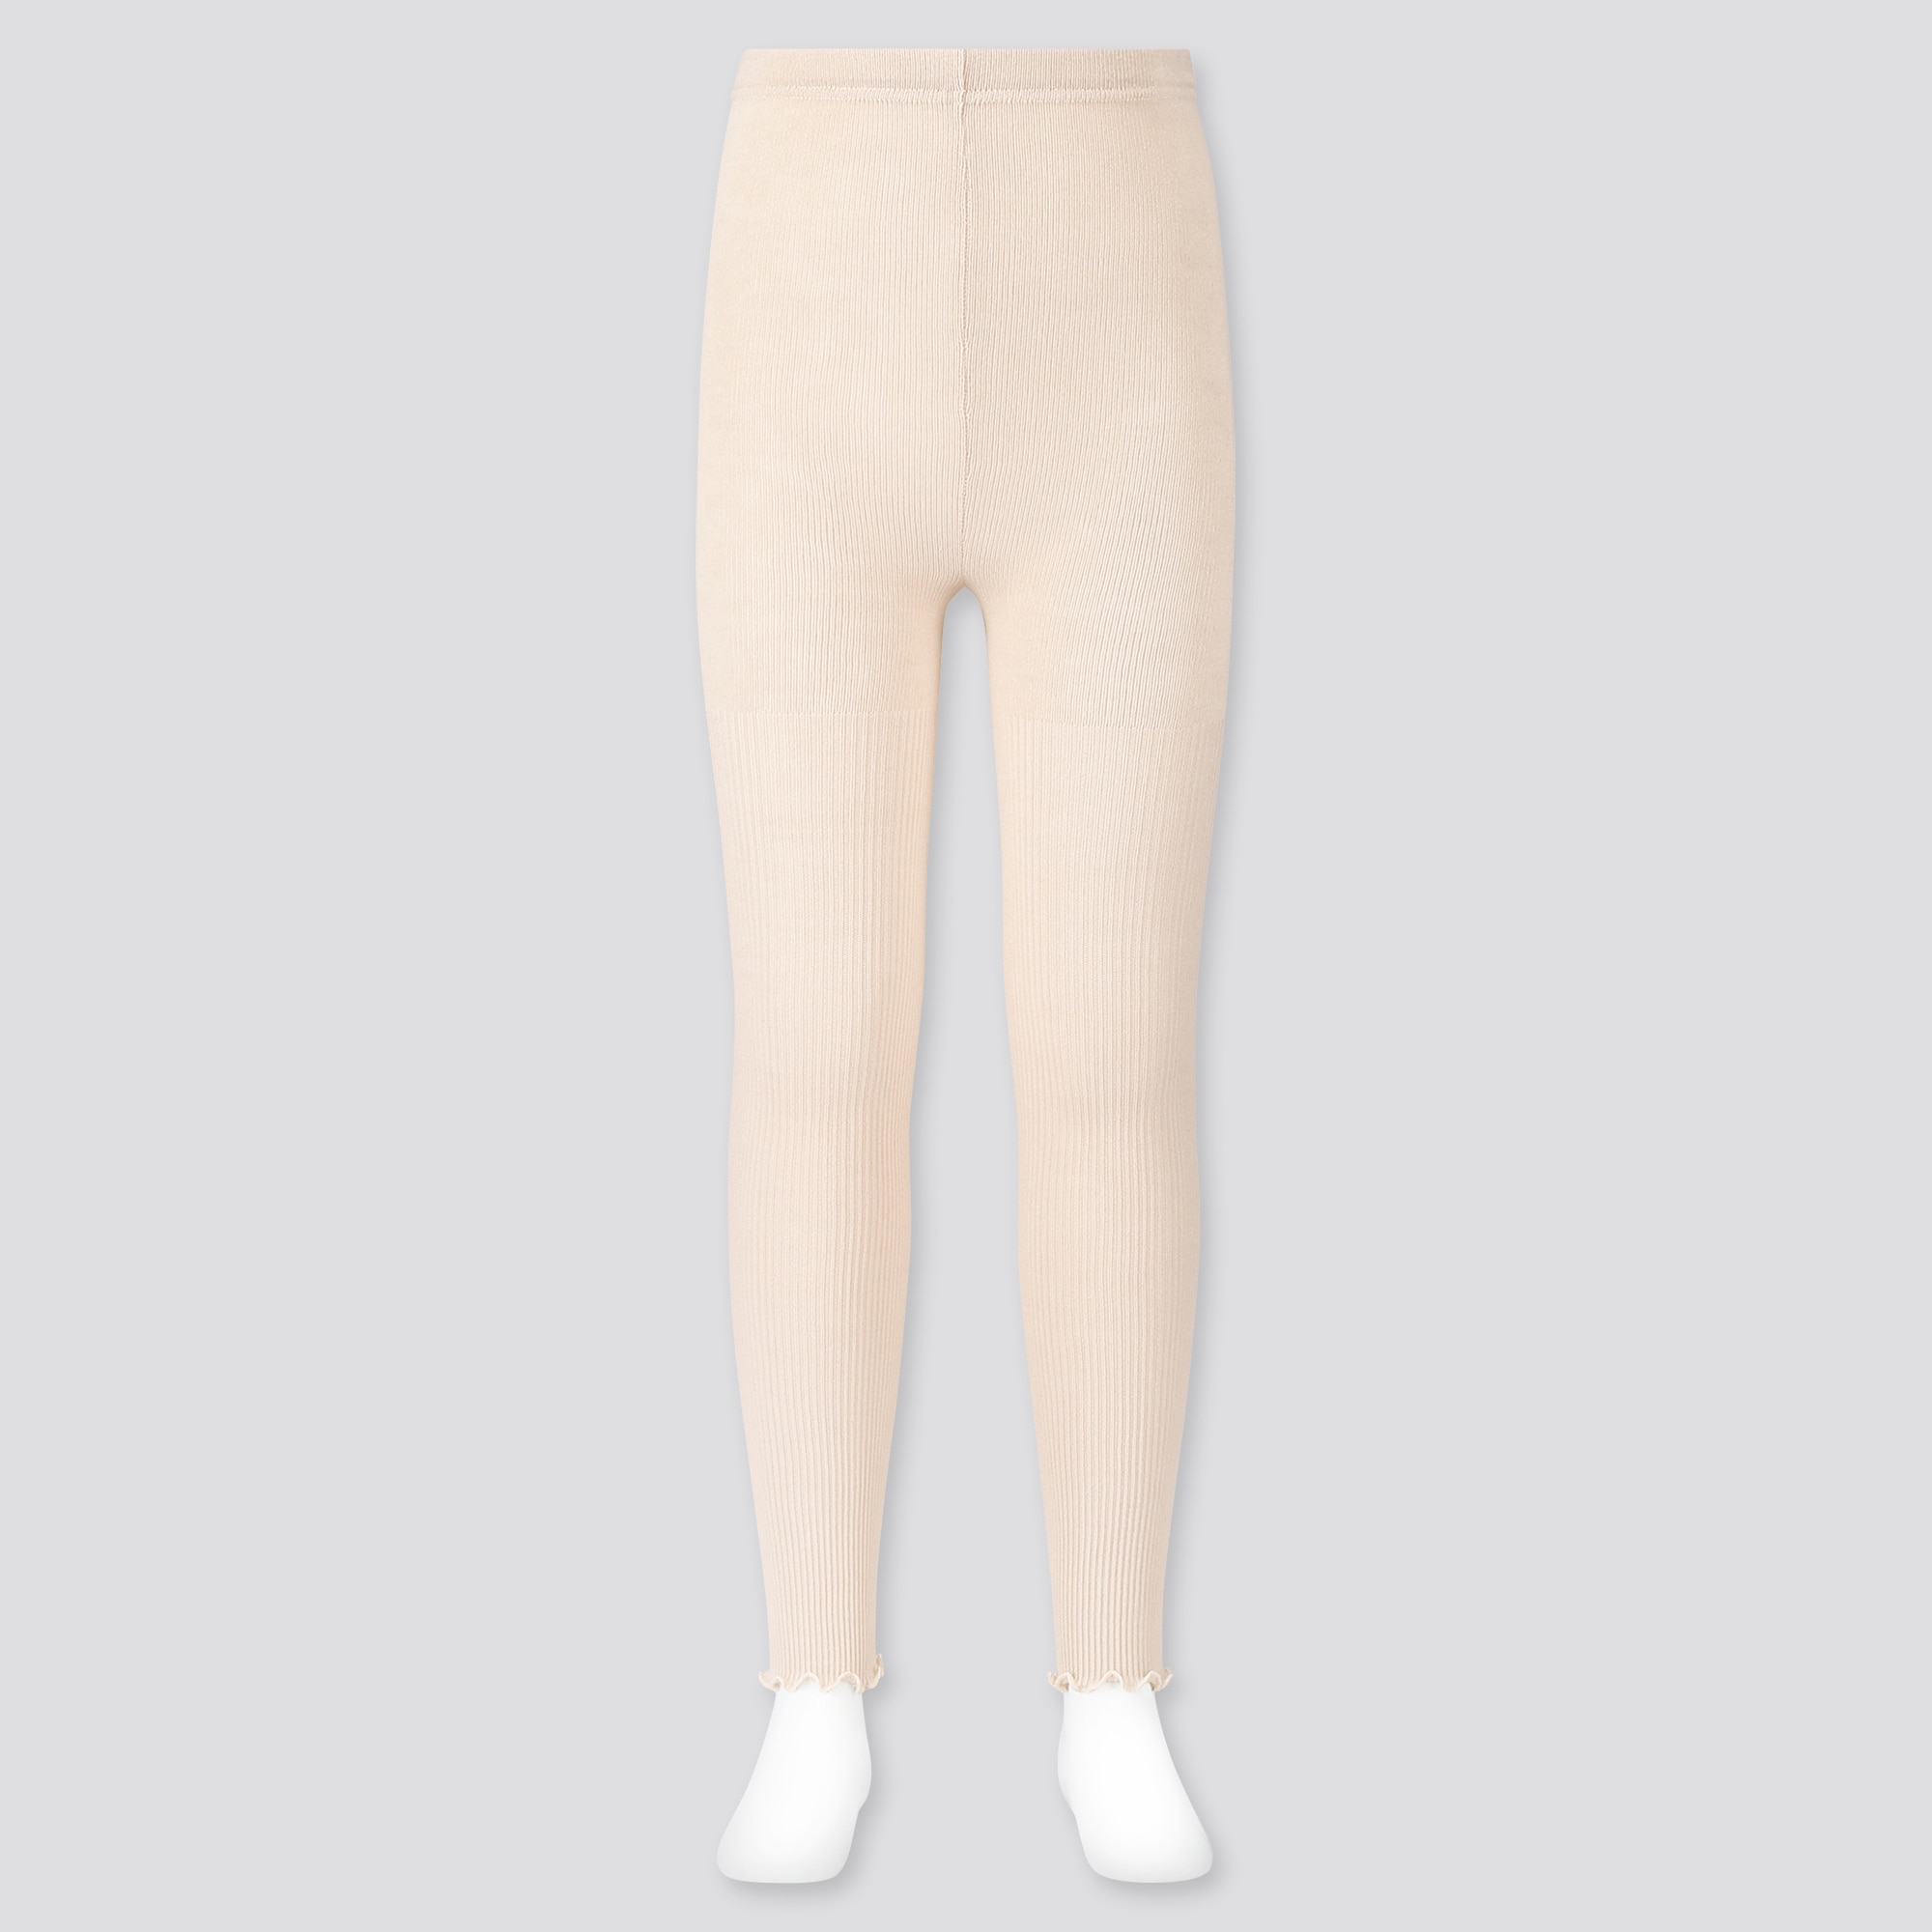 Uniqlo GIRLS RIBBED MELLOW ANKLE-LENGTH LEGGINGS